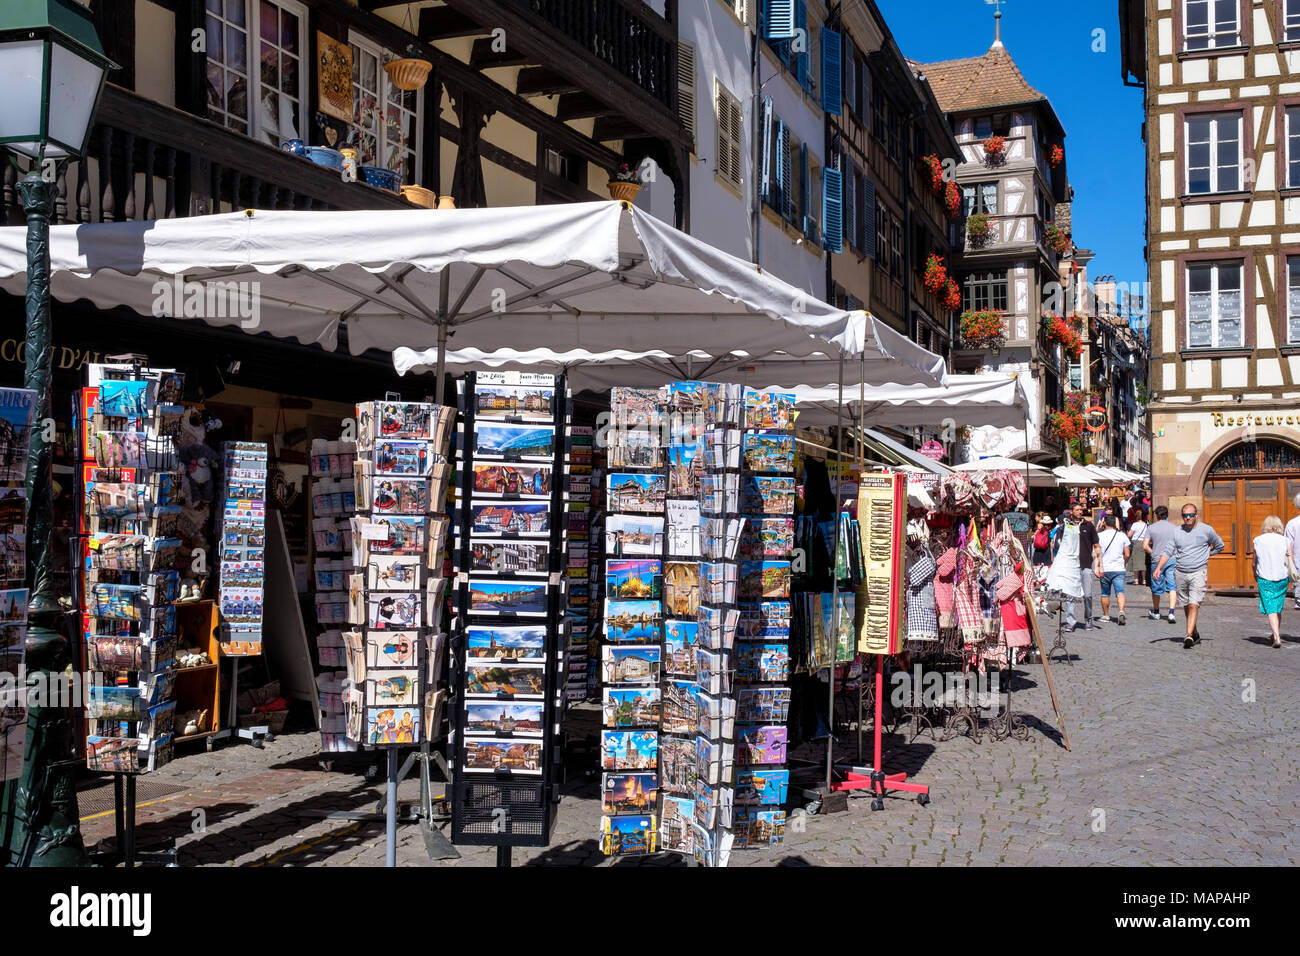 Postcards for sale on display stands, people, place du Marché aux Cochons de Lait square, Strasbourg, Alsace, France, Europe, - Stock Image